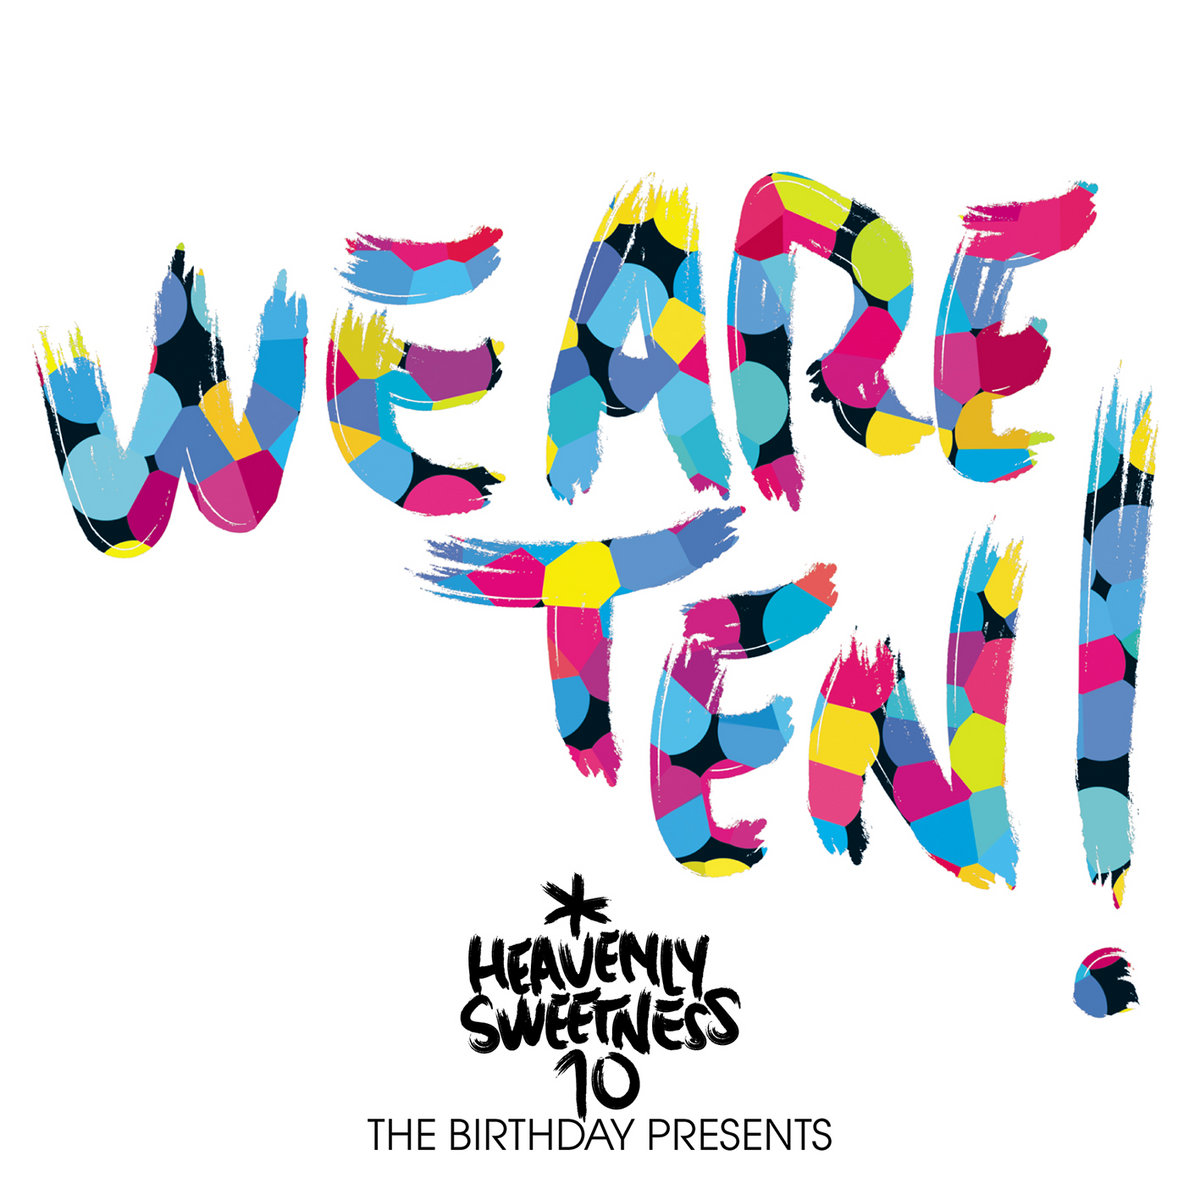 Includes Unlimited Streaming Of We Are Ten The Birthday Presents Via Free Bandcamp App Plus High Quality Download In MP3 FLAC And More